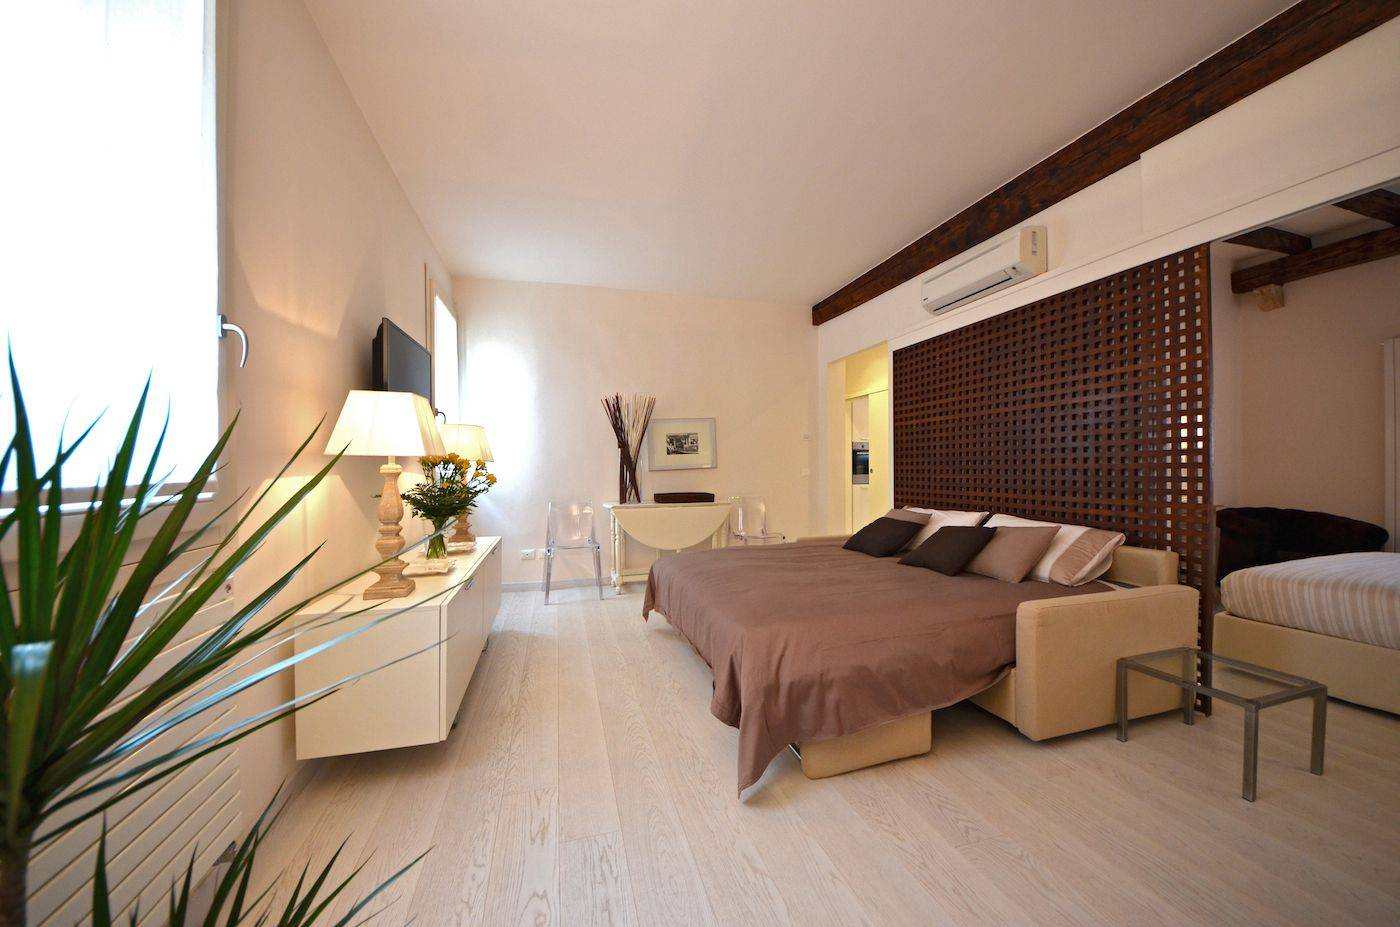 the sofa in the living room can be used as a very comfortable double bed